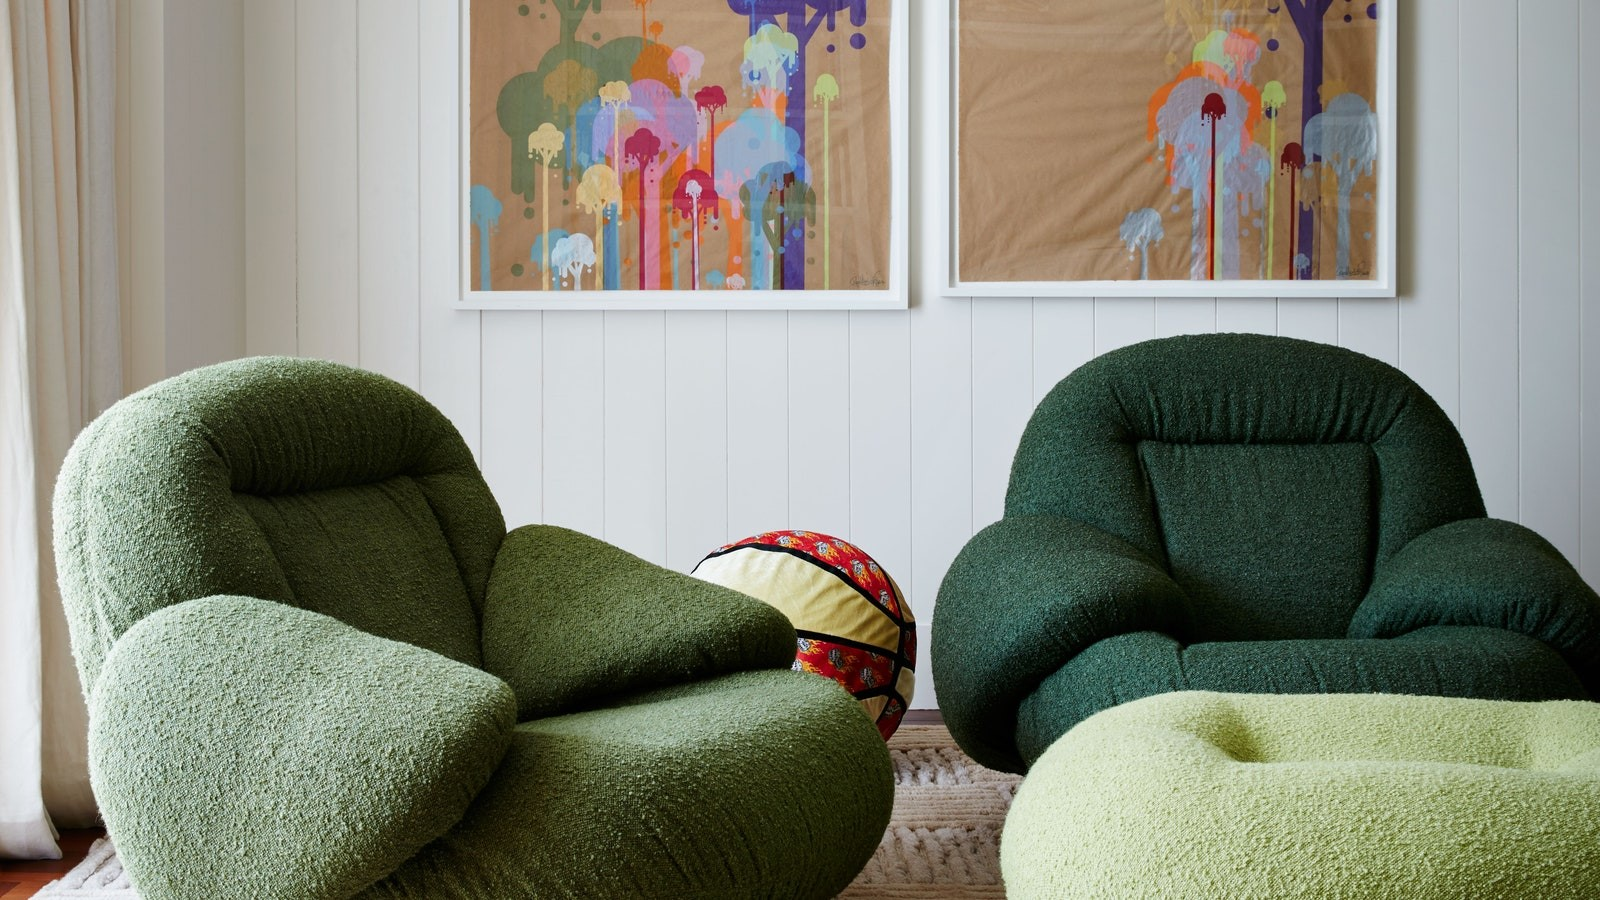 How to enhance Soft Furnishing Aesthetics in your house? - Sheet4